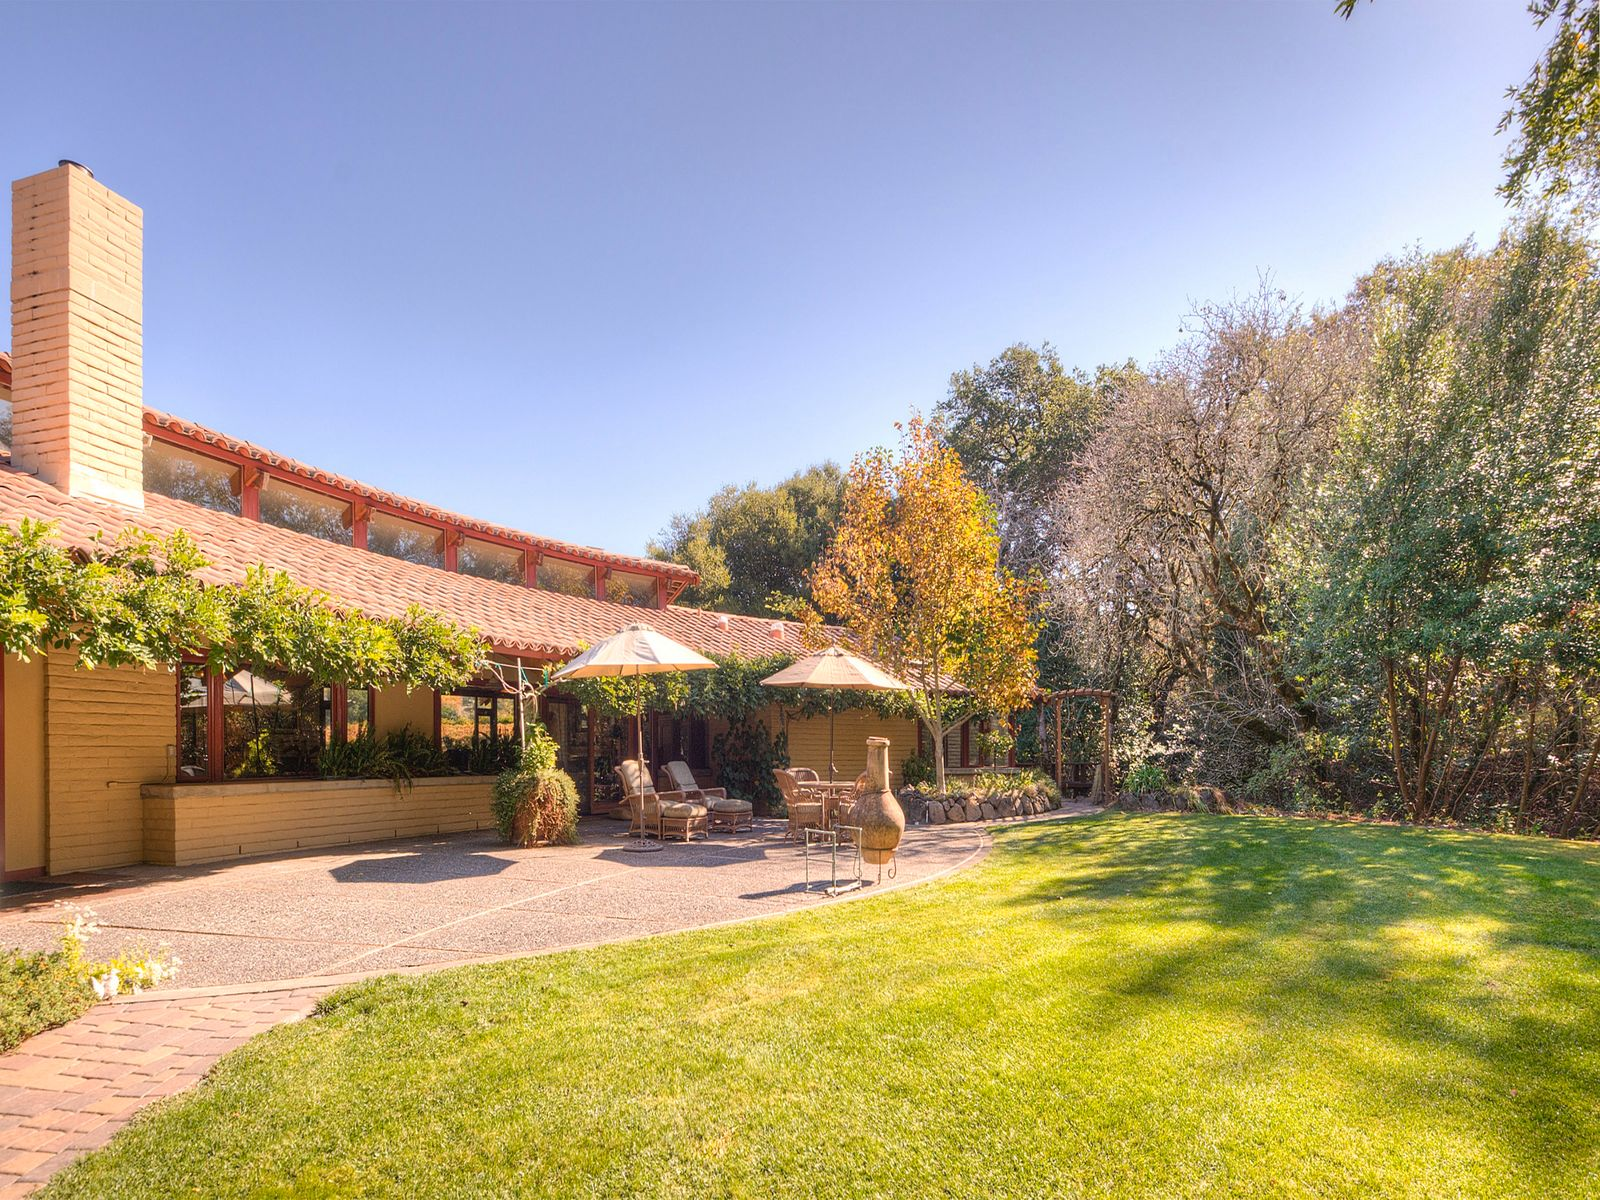 South facing, creek-side back garden